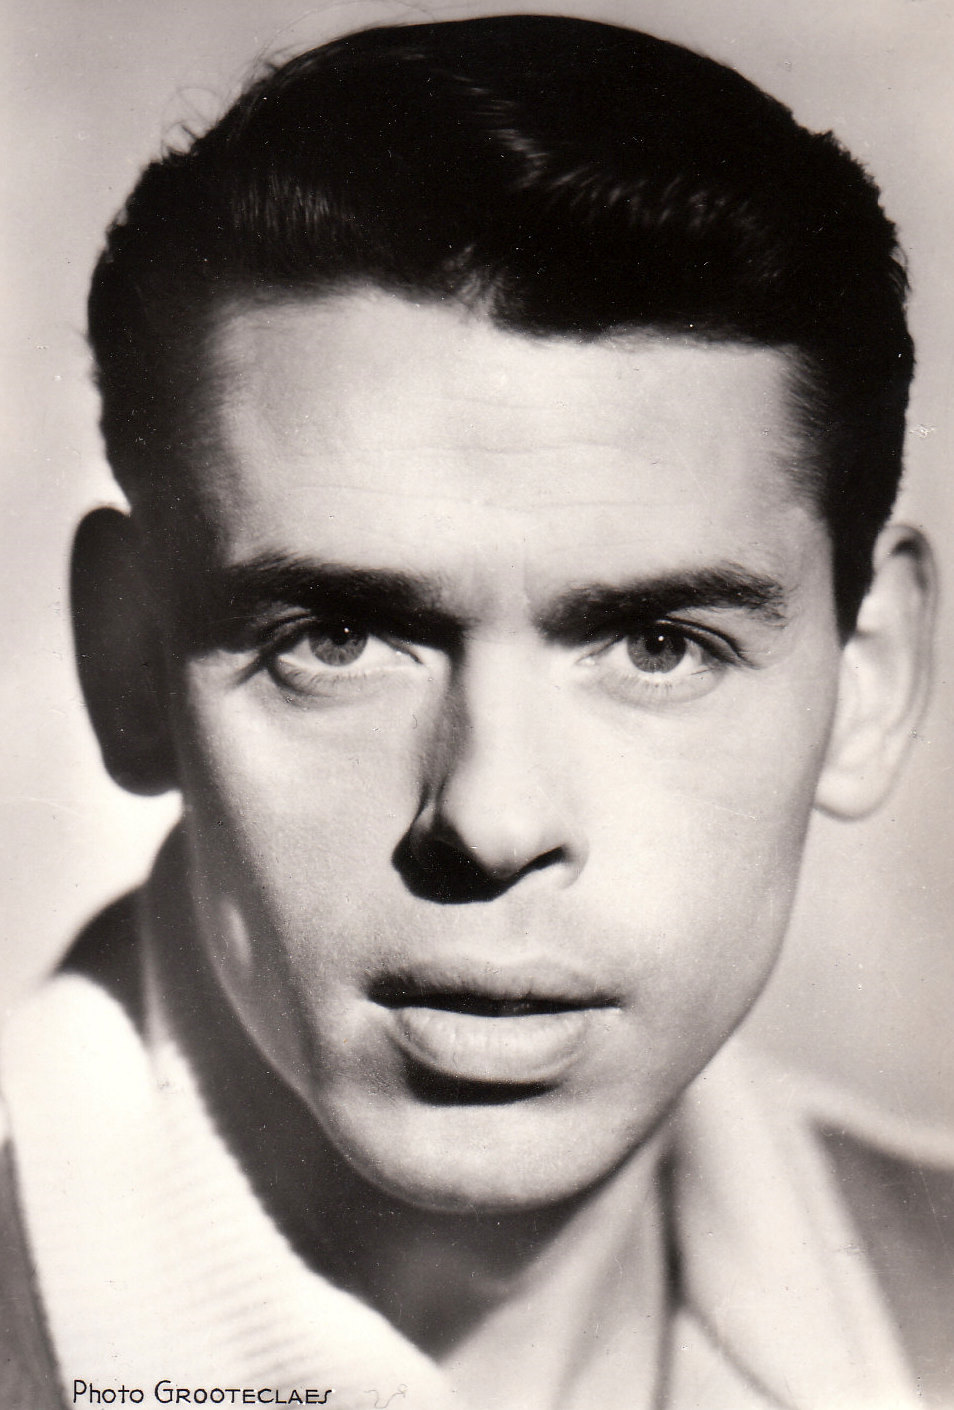 Jacques Brel net worth